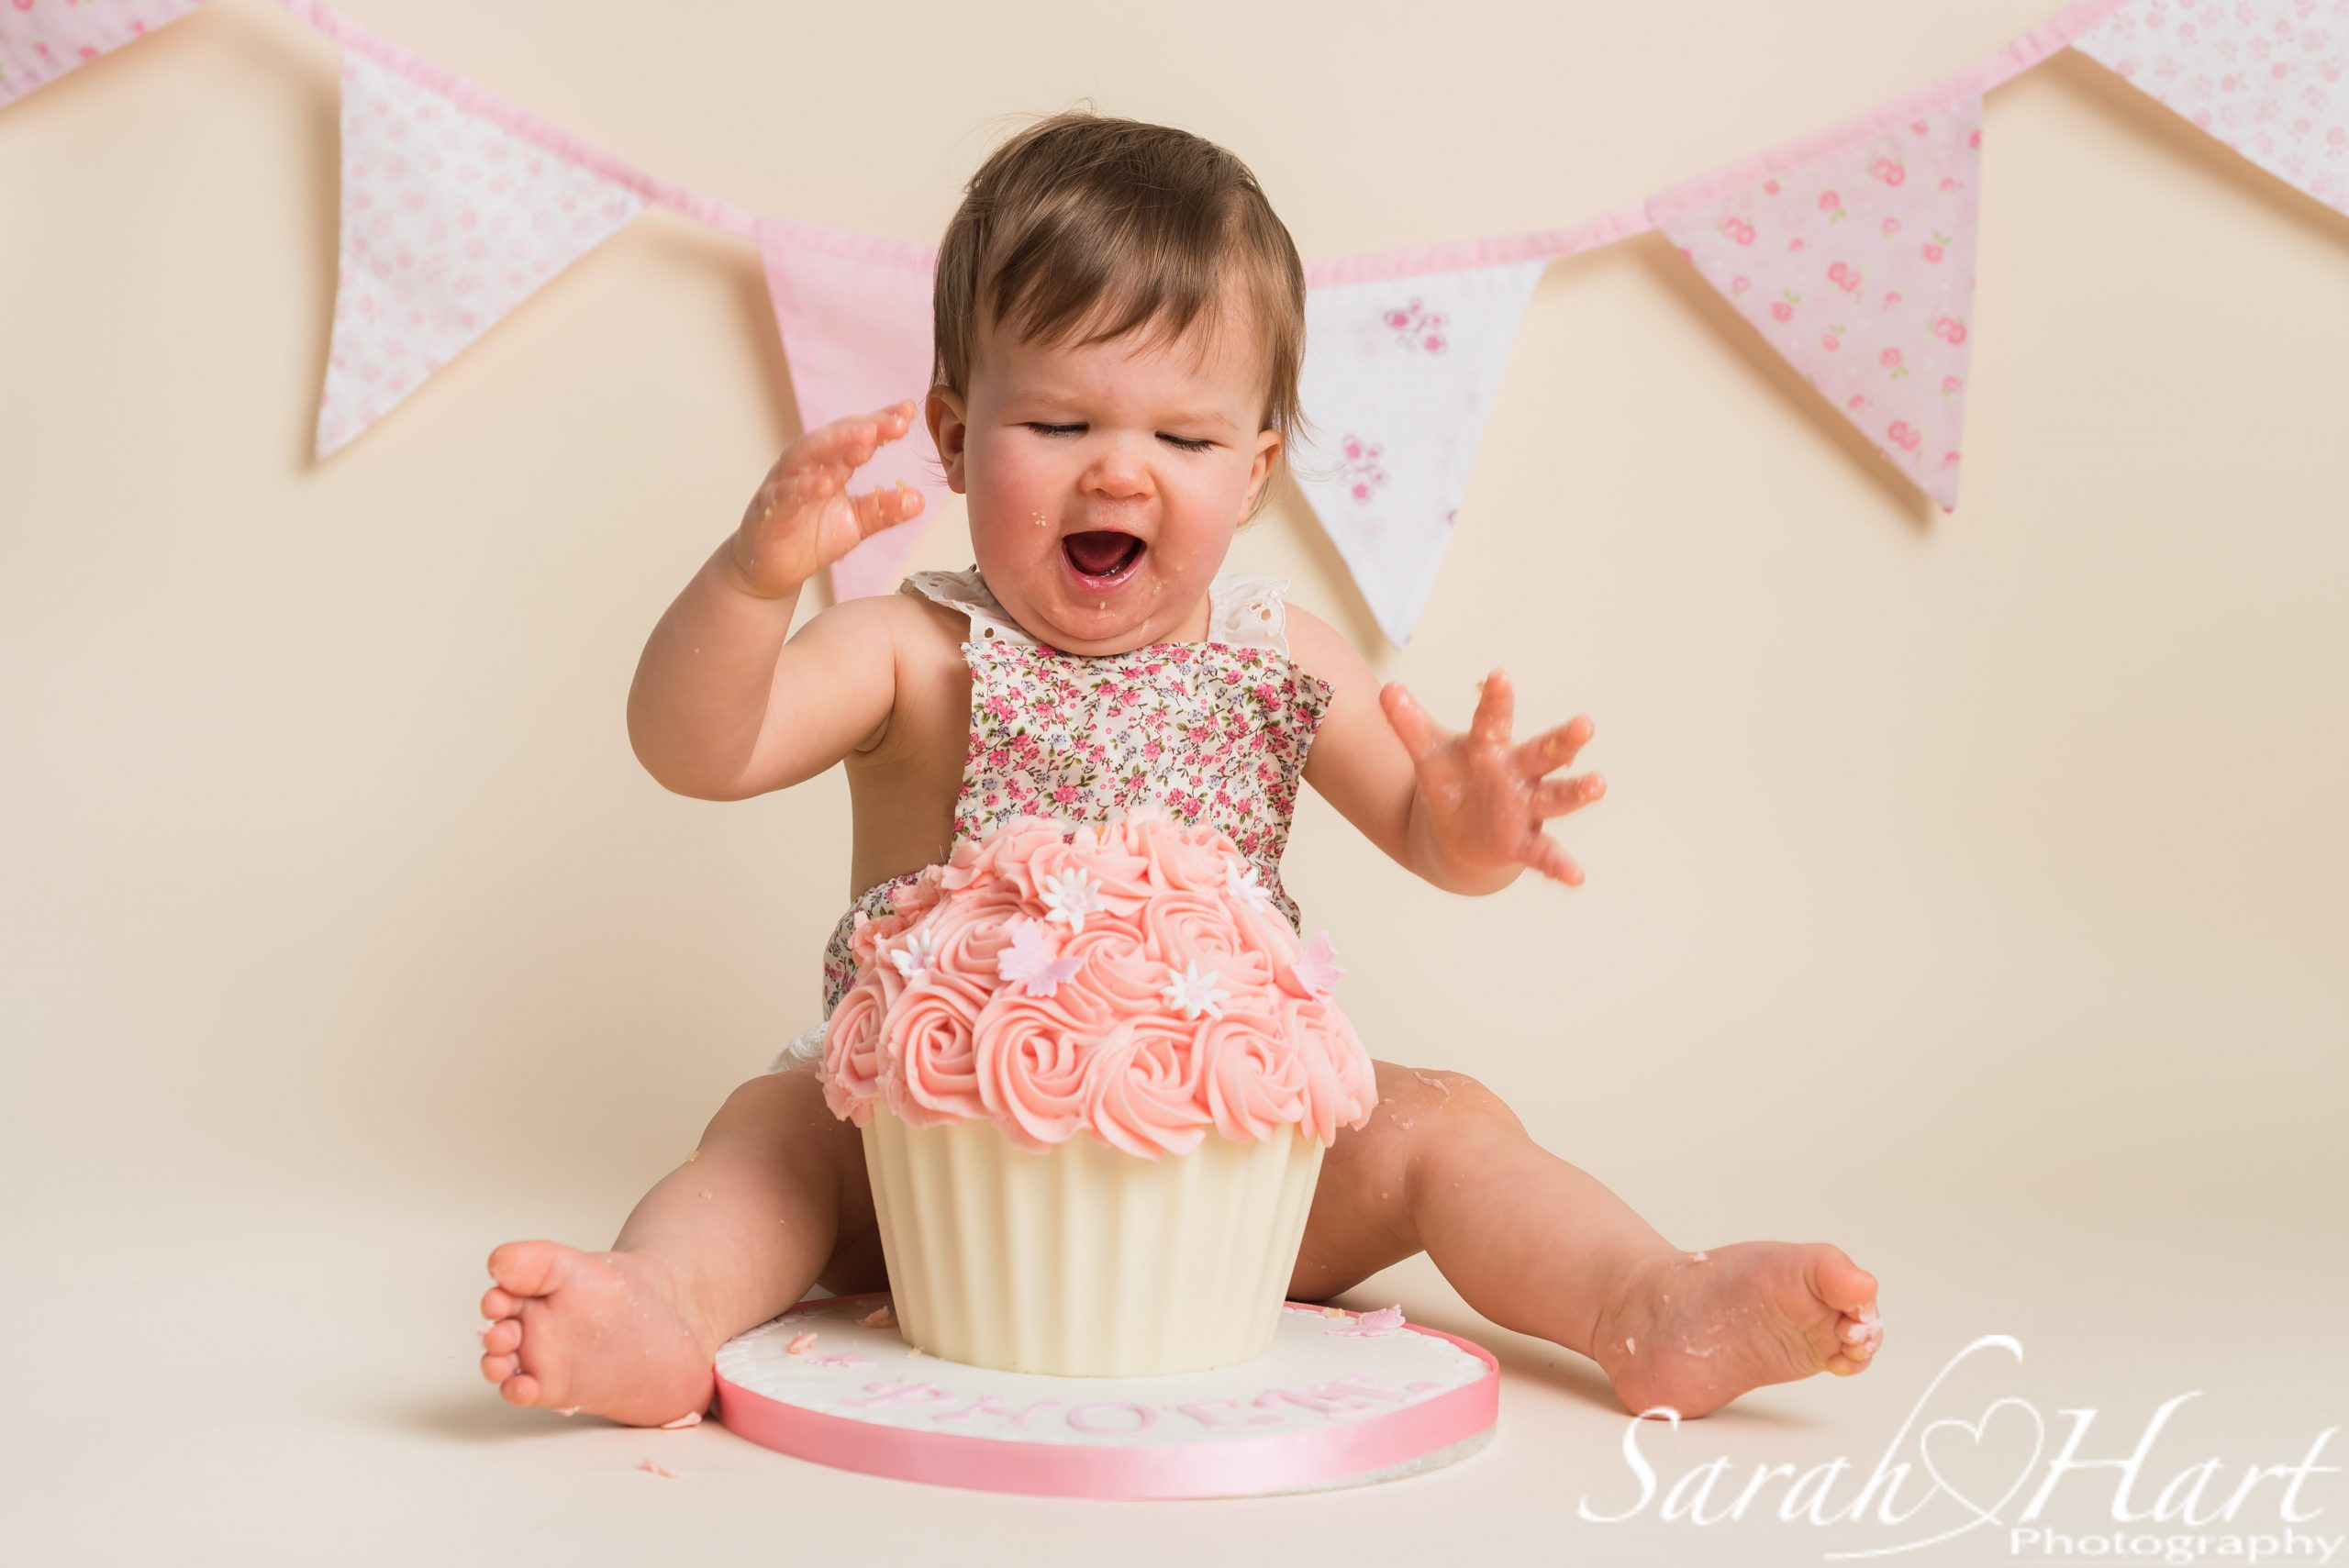 cake time! #iamone, cake smash fun, kent baby photography